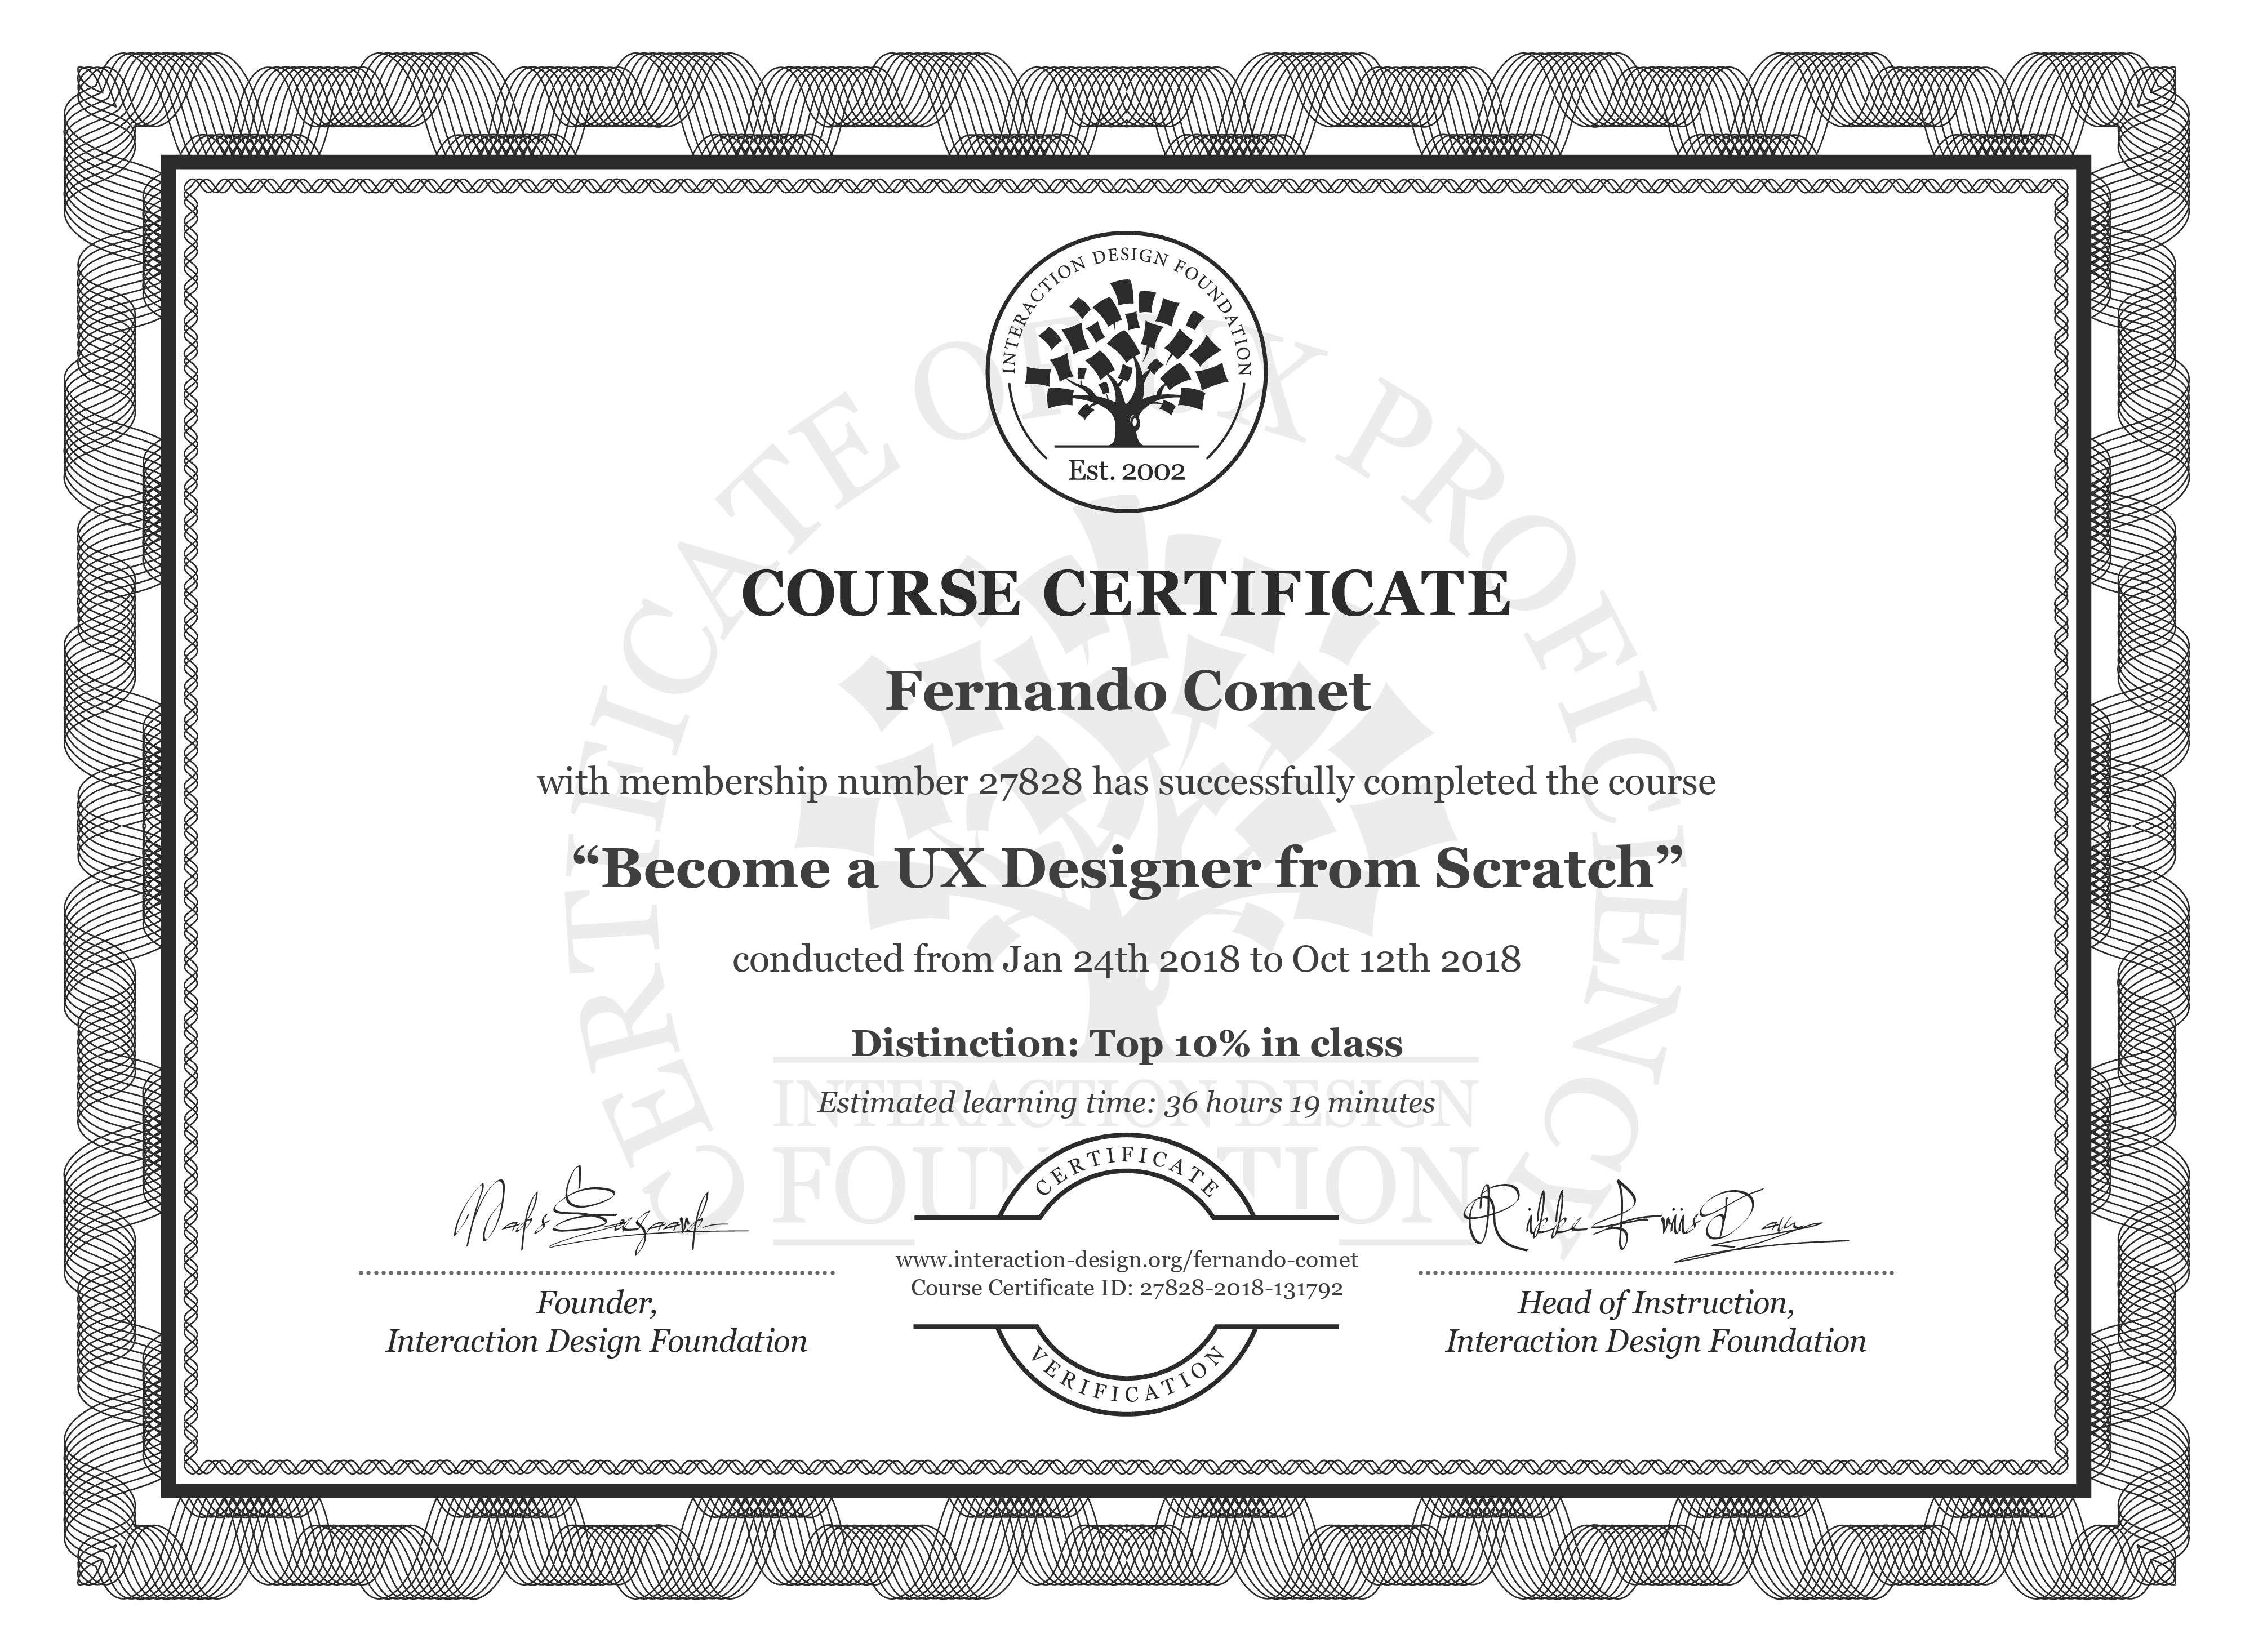 Fernando Comet's Course Certificate: Become a UX Designer from Scratch